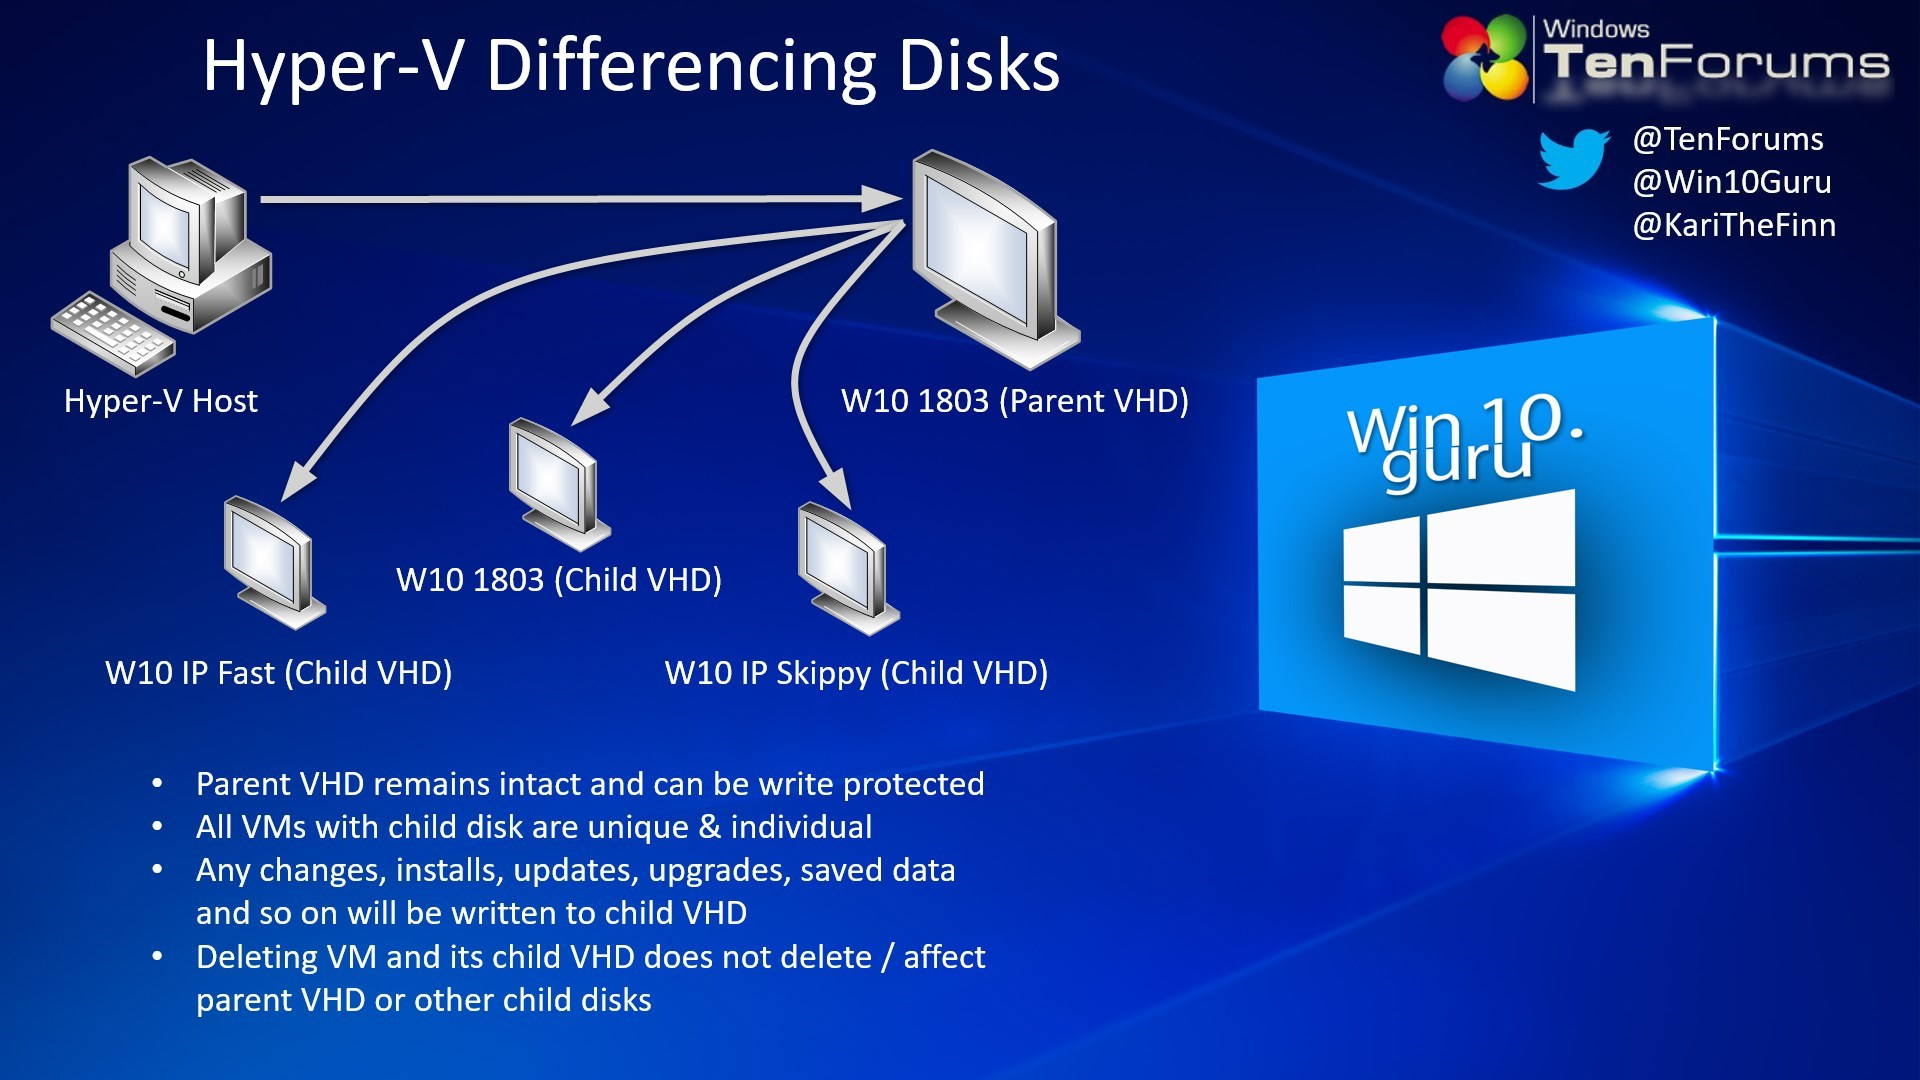 Hyper-V and Differencing Disks – Win10 Guru